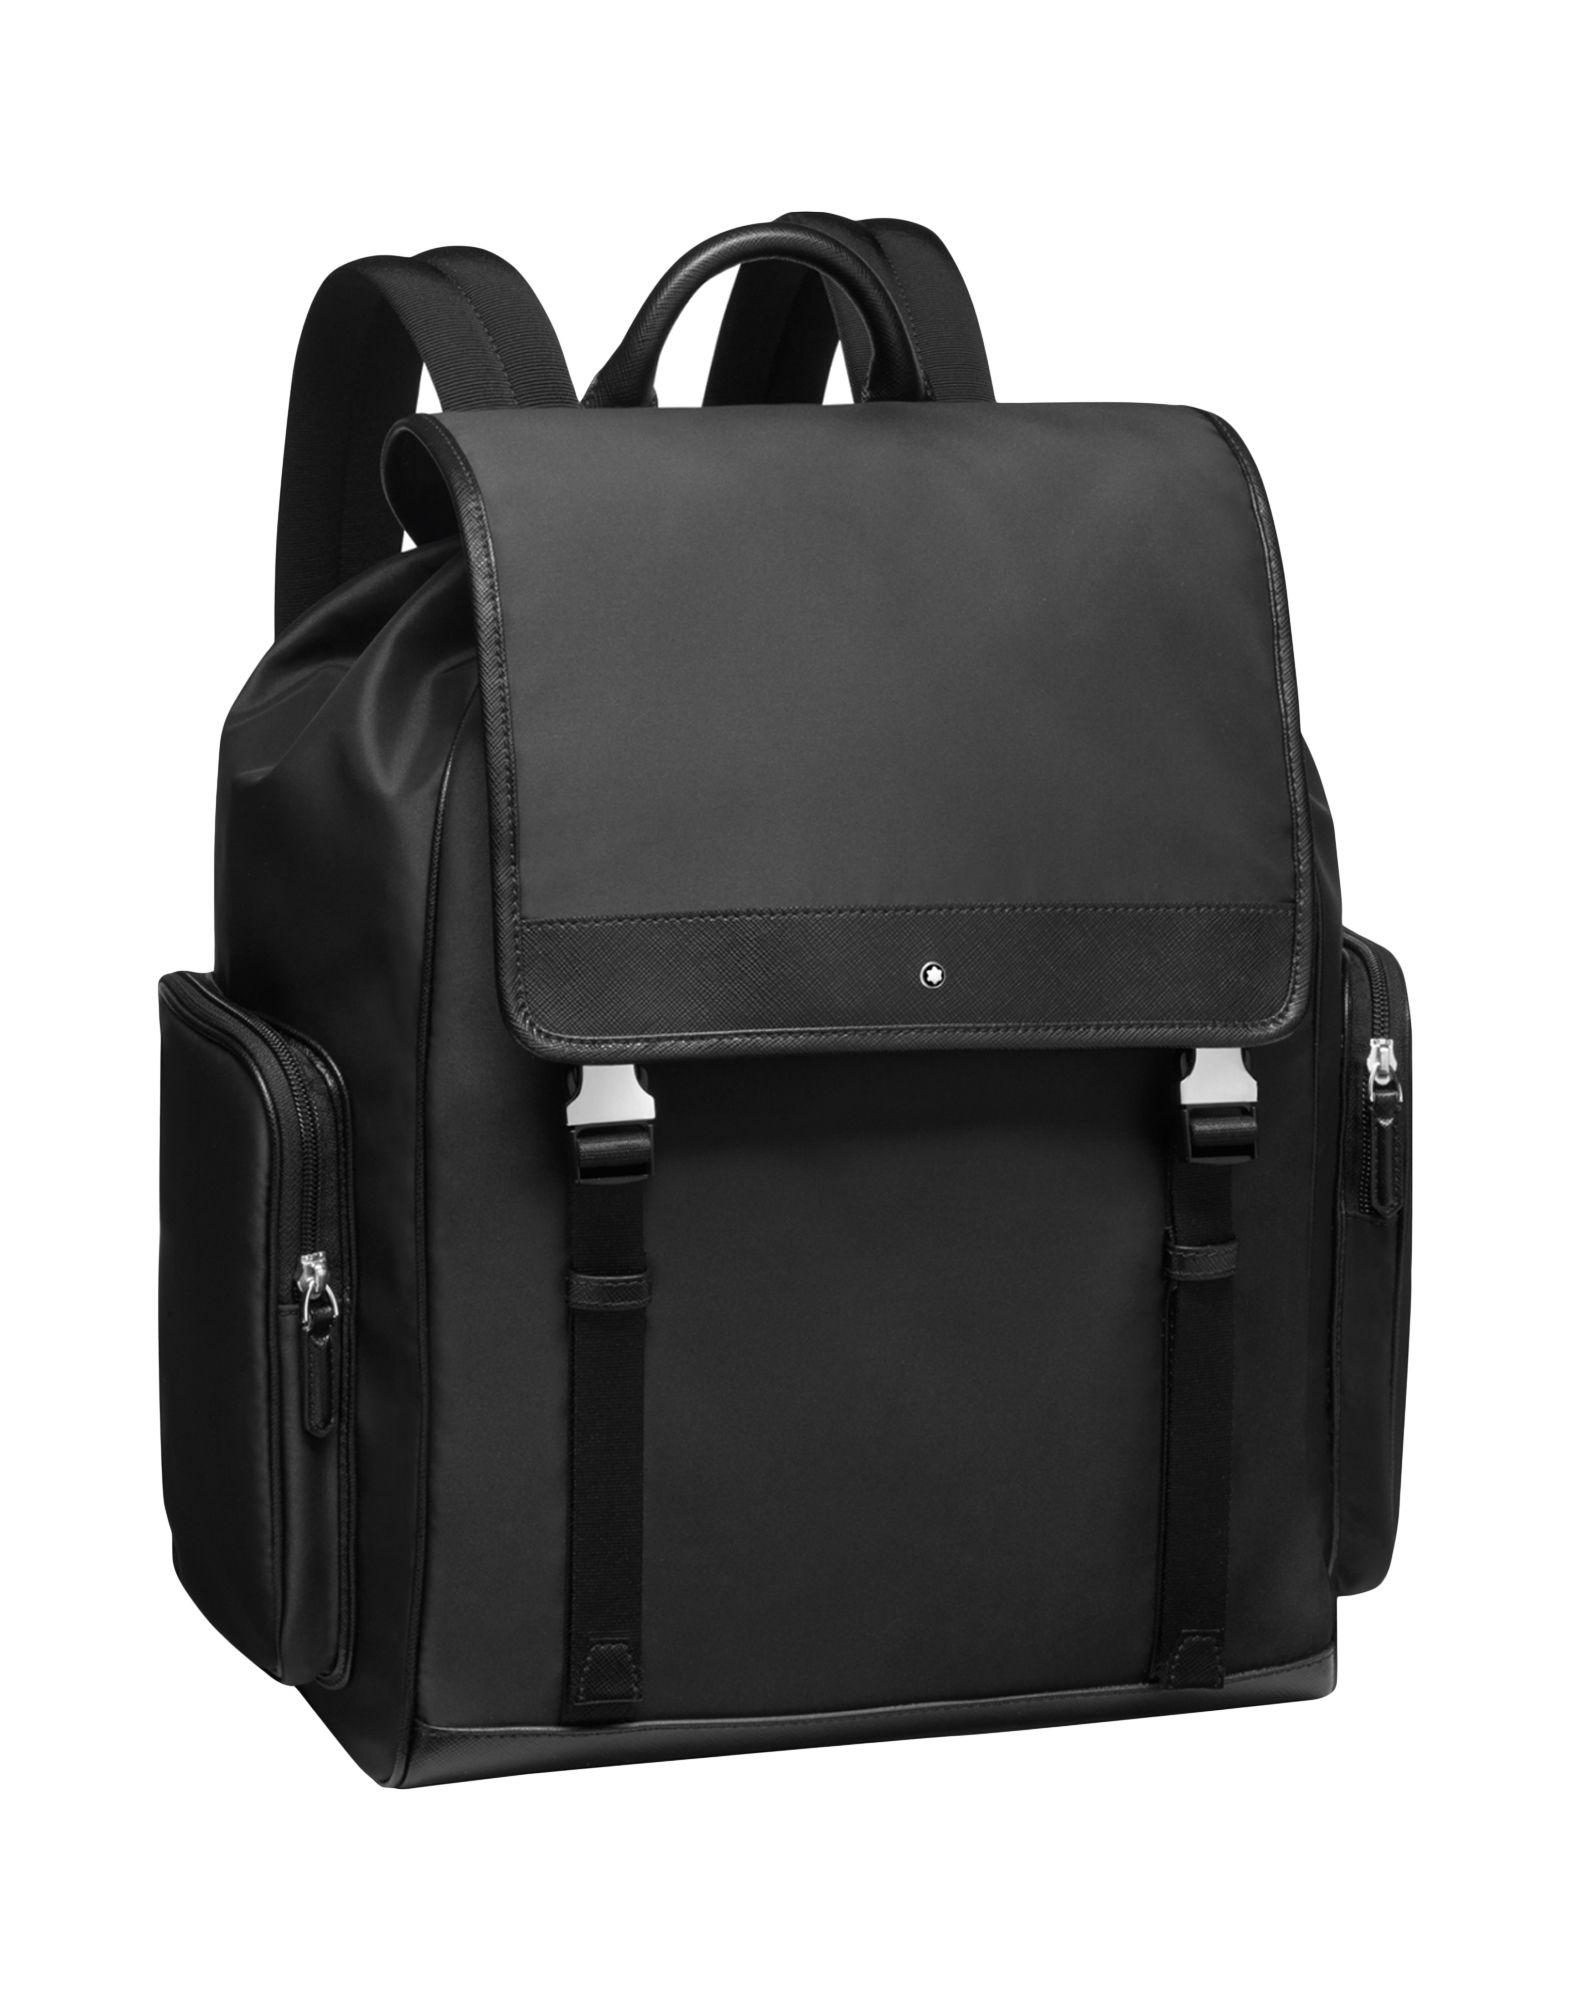 7143ea6bf236 Montblanc - Black Backpacks   Bum Bags for Men - Lyst. View fullscreen